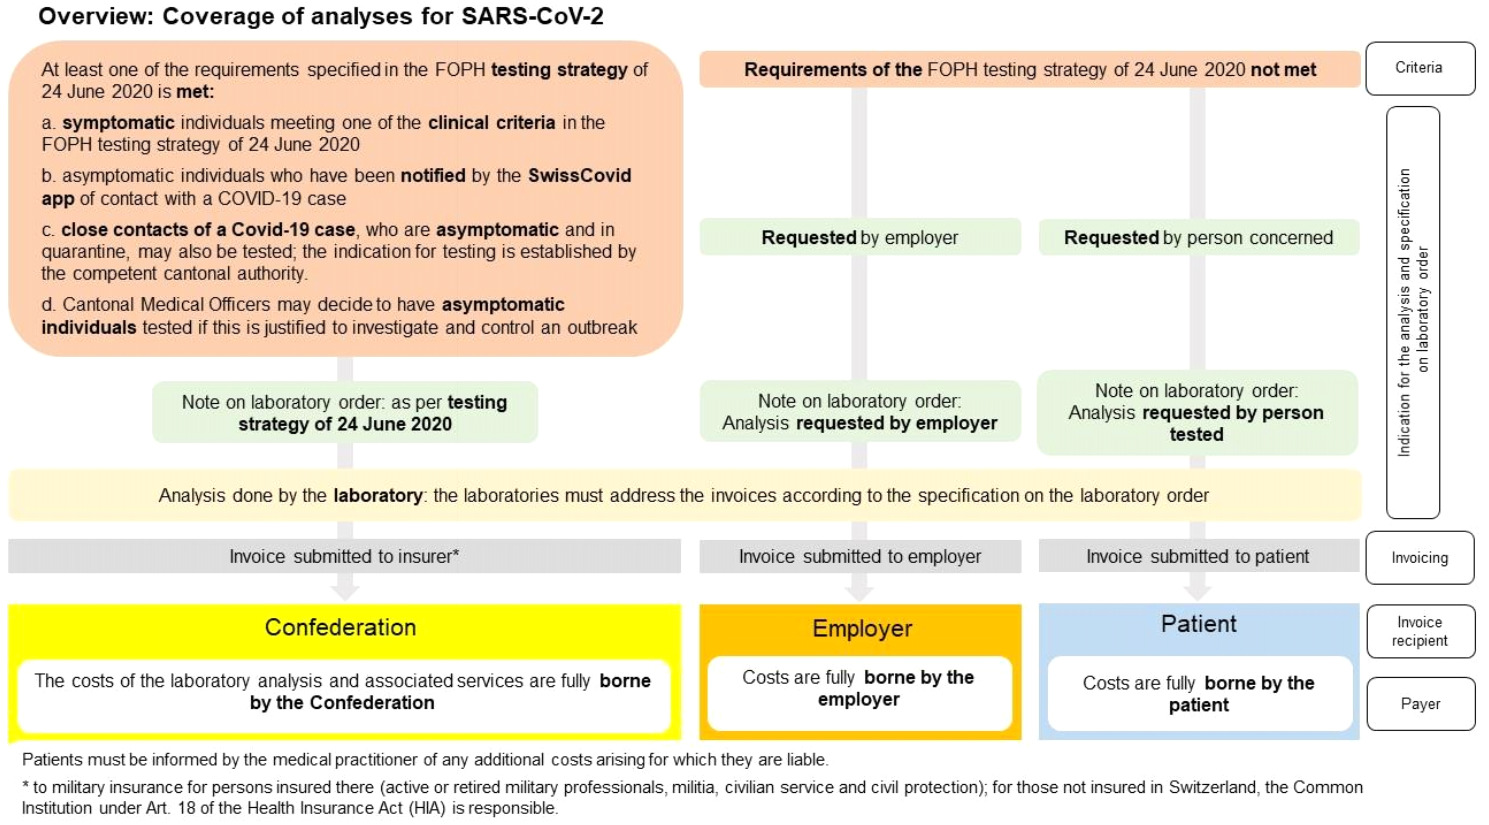 BAG_Coverage Analyses for SARS-CoV-2